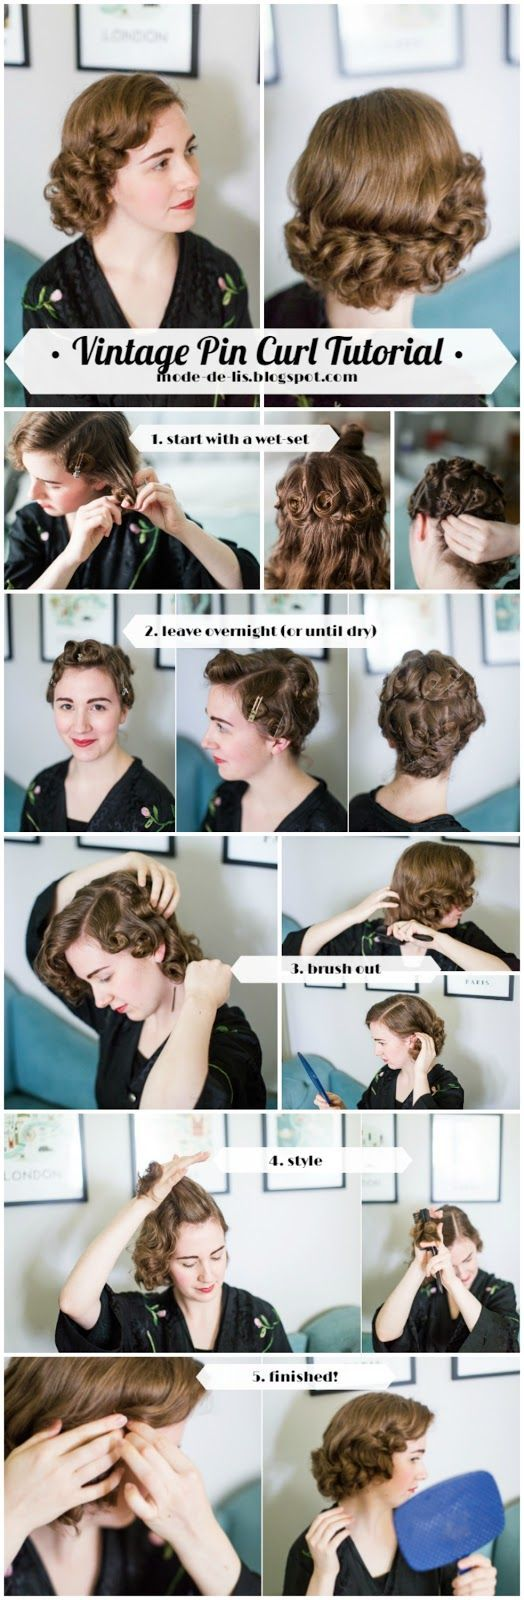 It seemed like it was about time to finally post another update on my current endeavors with vintage hairstyling!  You can read through all...